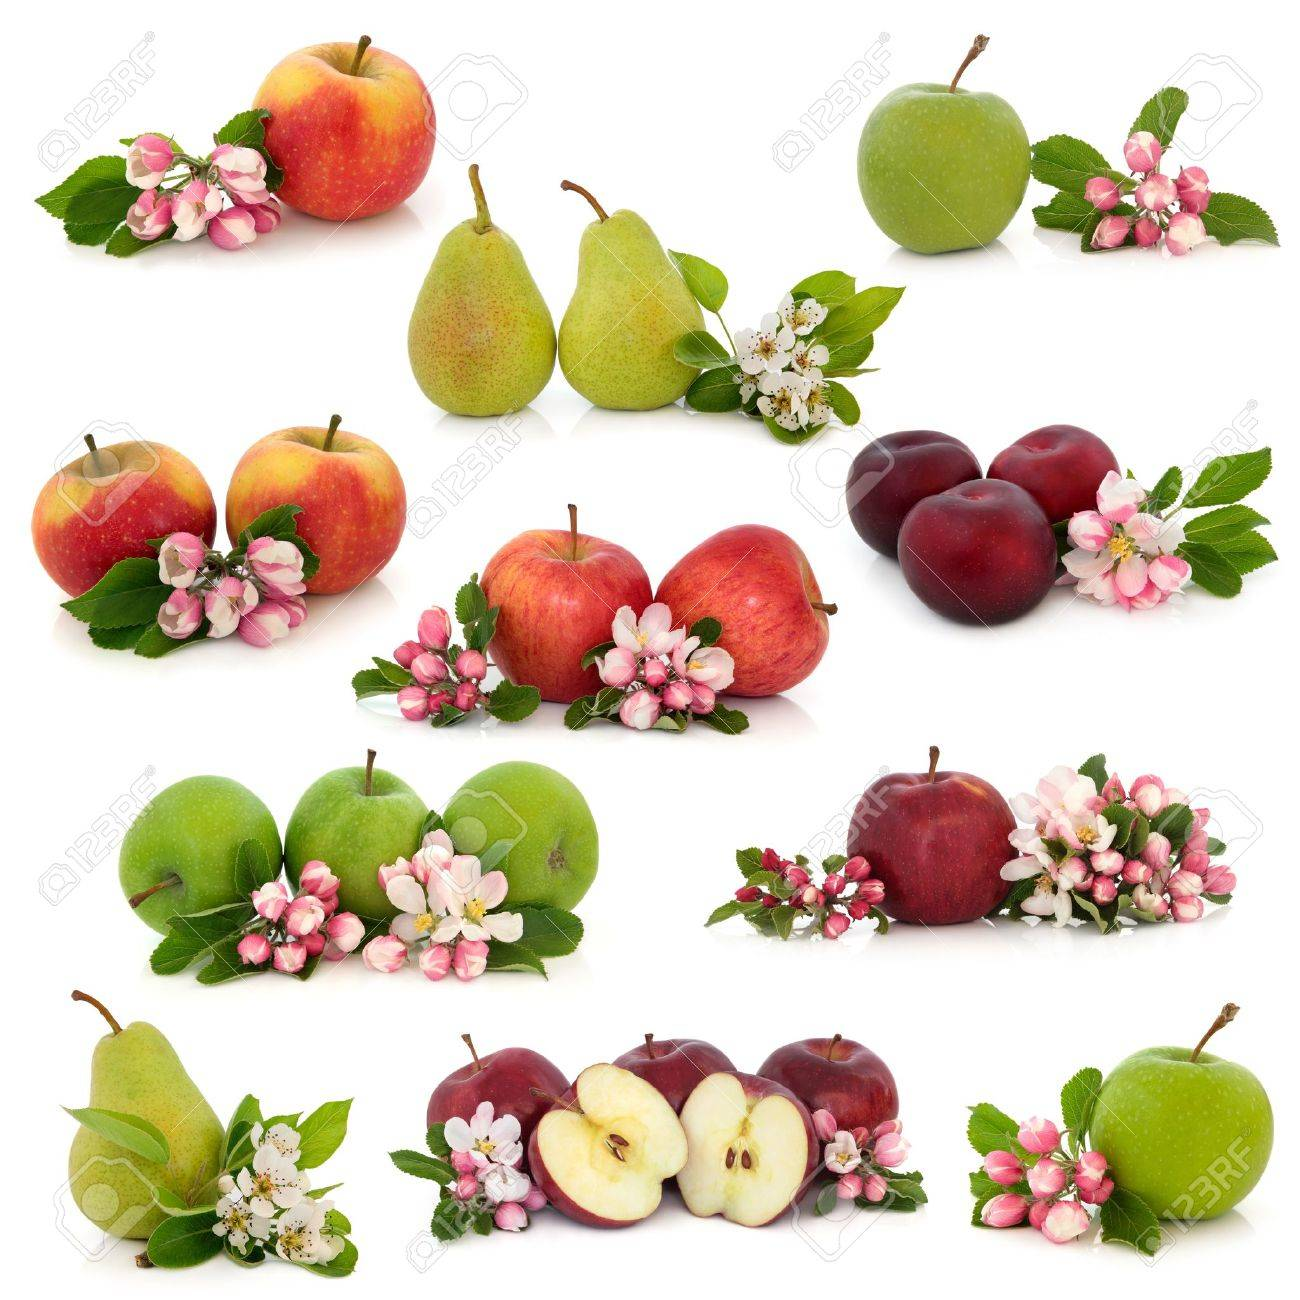 large collection of apple pear and plum fruit with corresponding